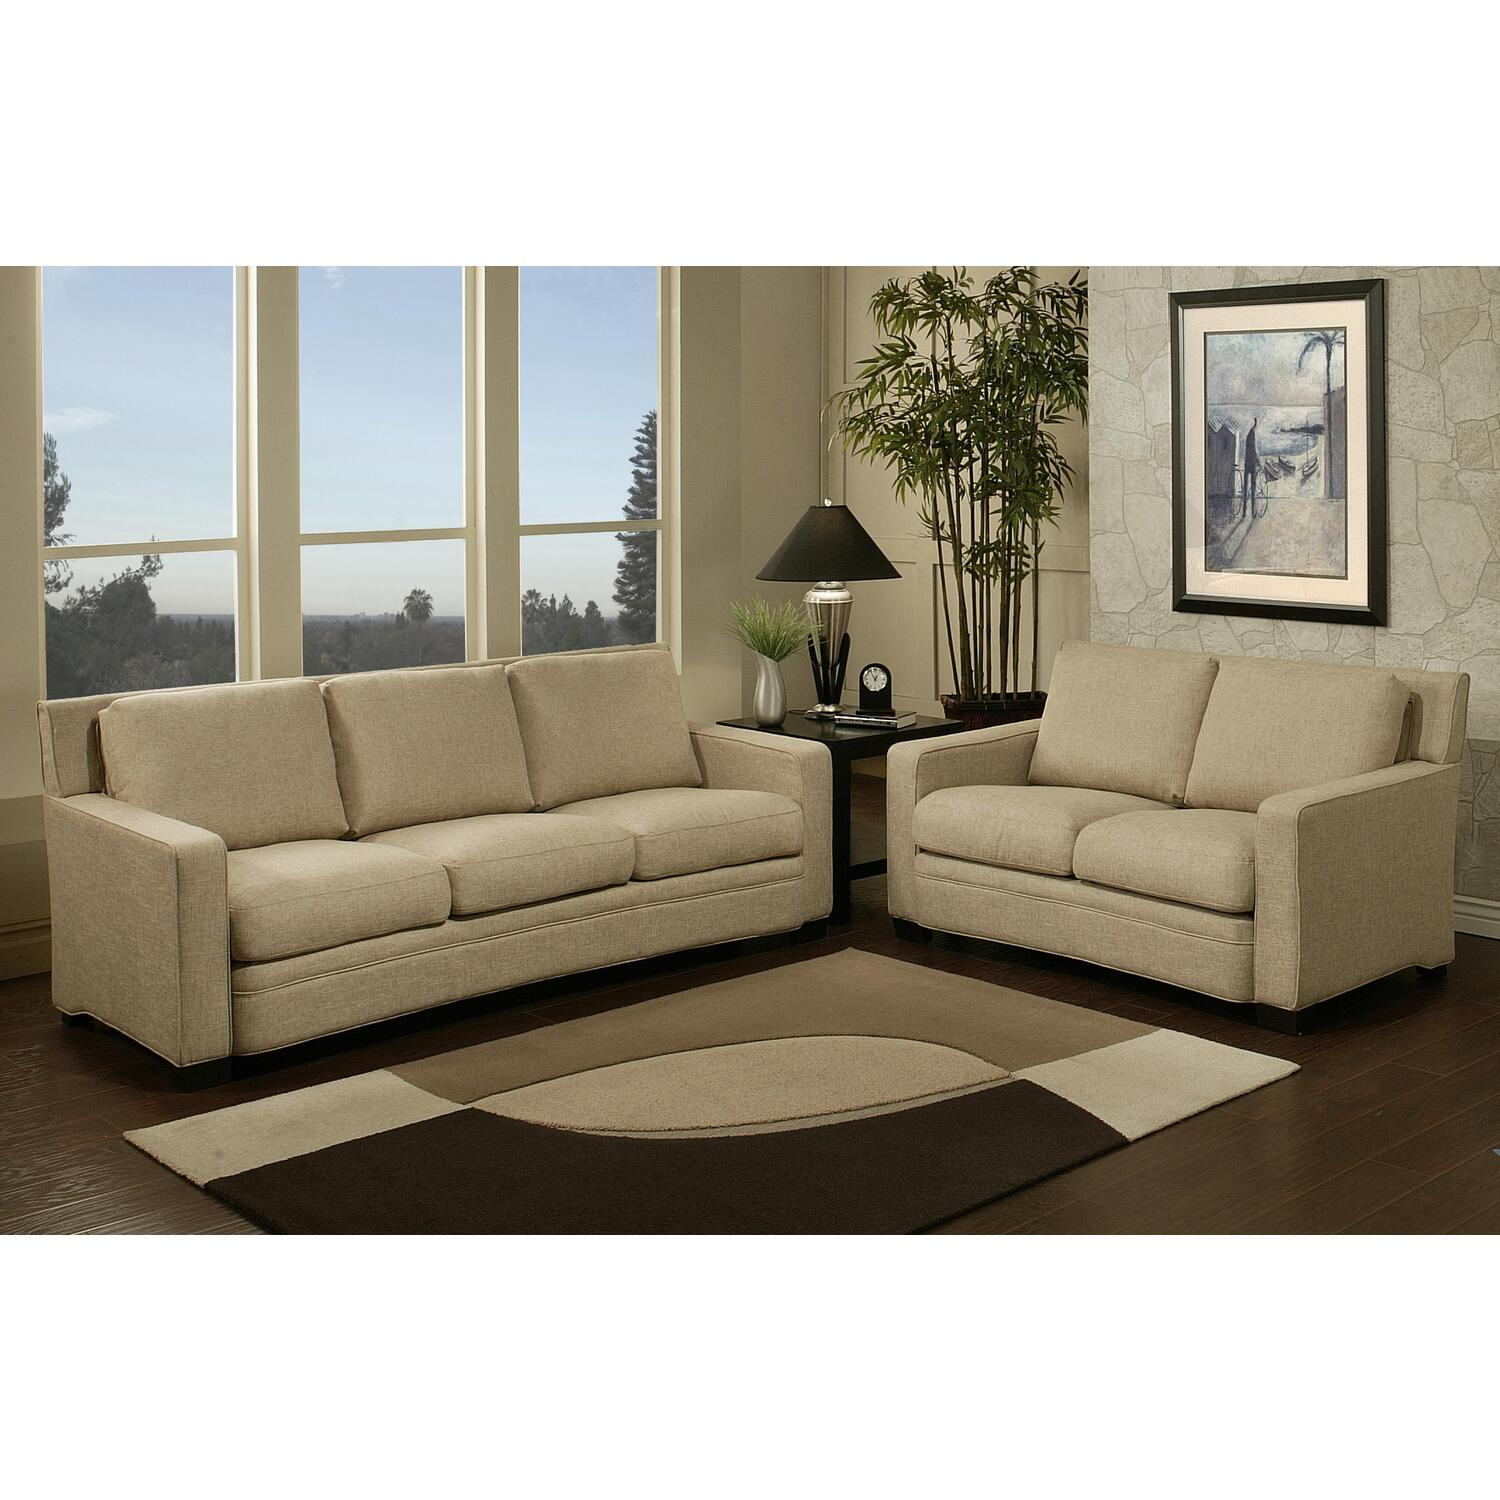 Abbyson Living Adler Fabric Sofa And Loveseat Set By Oj Commerce Ci F230 Crm 3 2 2